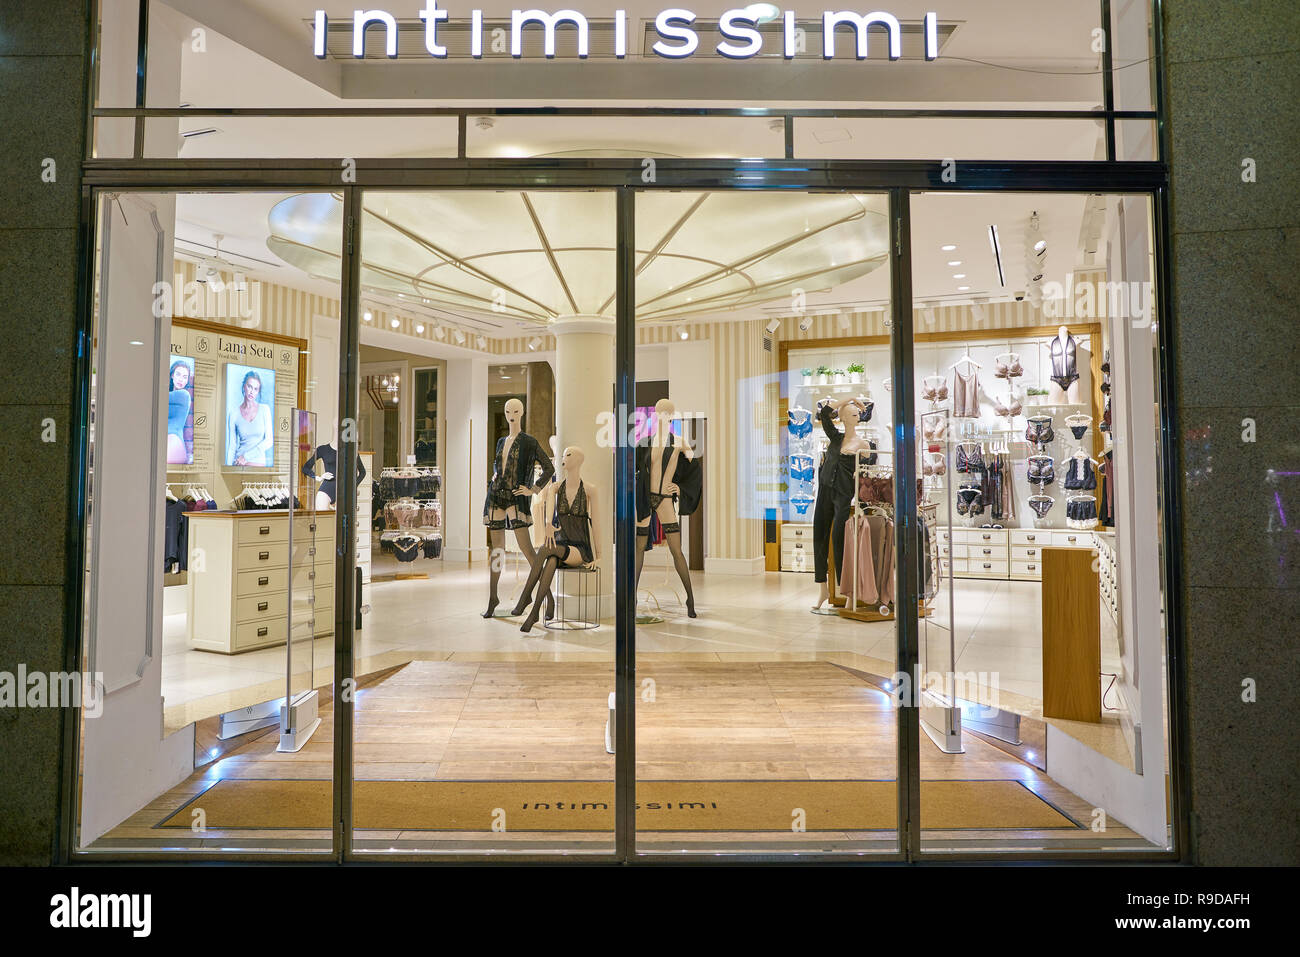 Milan Italy Circa November 2017 Entrance At Intimissimi Store In Milan Intimissimi Is An Italian Clothing Label Which Specializes In Bras Brie Stock Photo Alamy